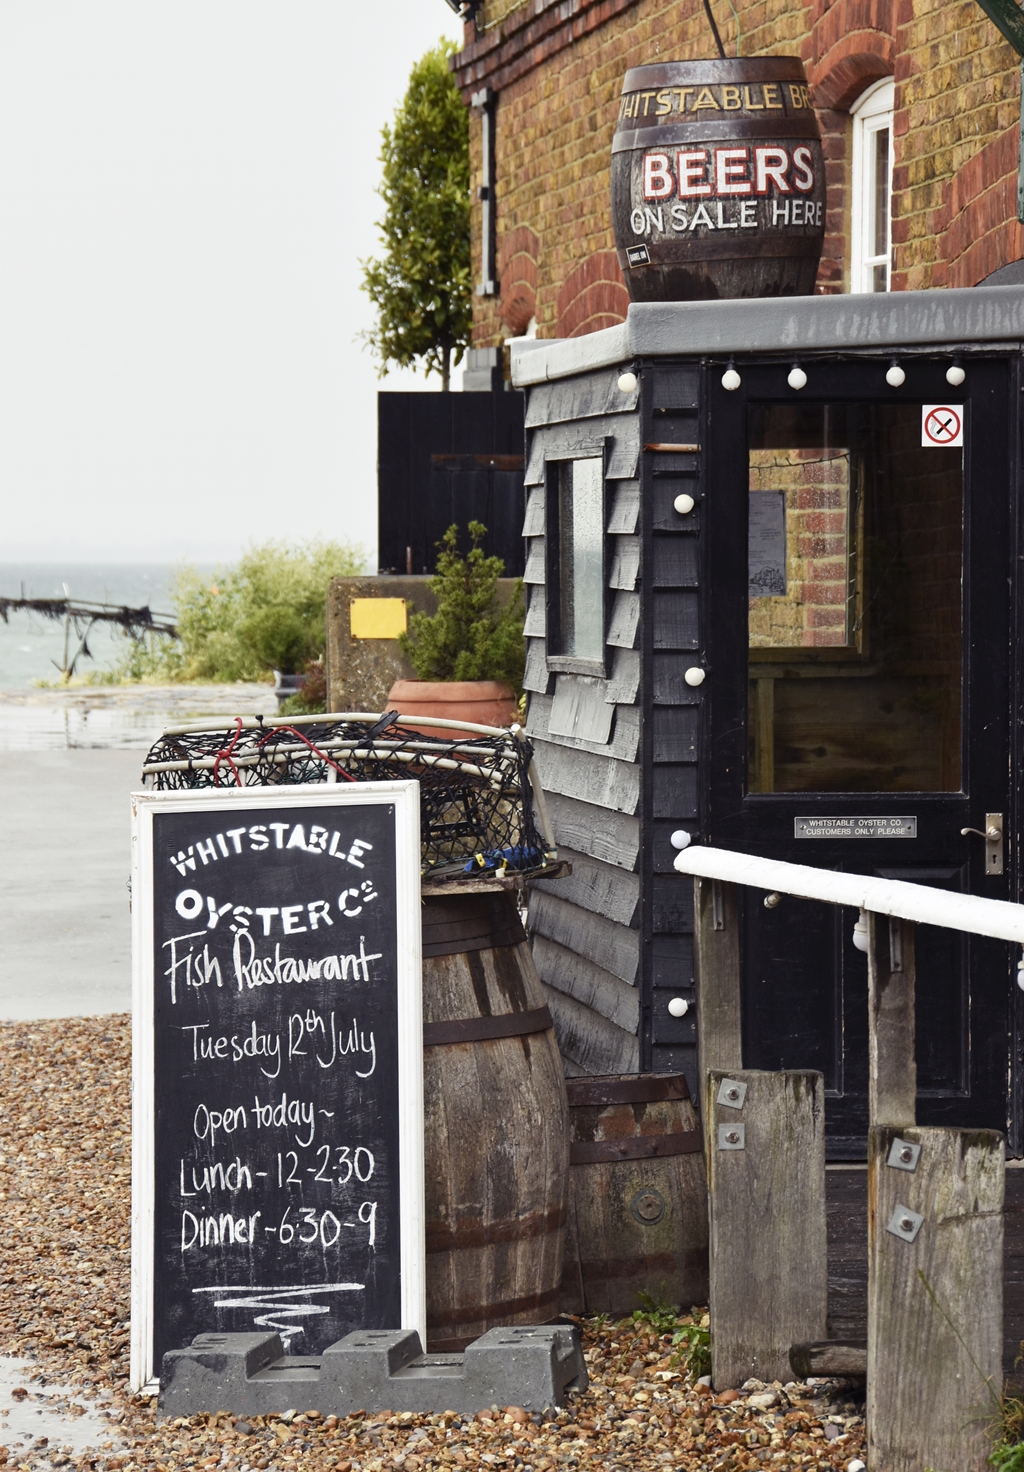 Südengland Roadtrip | Whitstable in Kent  -  Seafront Whitstable Oysters | Travel with luzia pimpinella